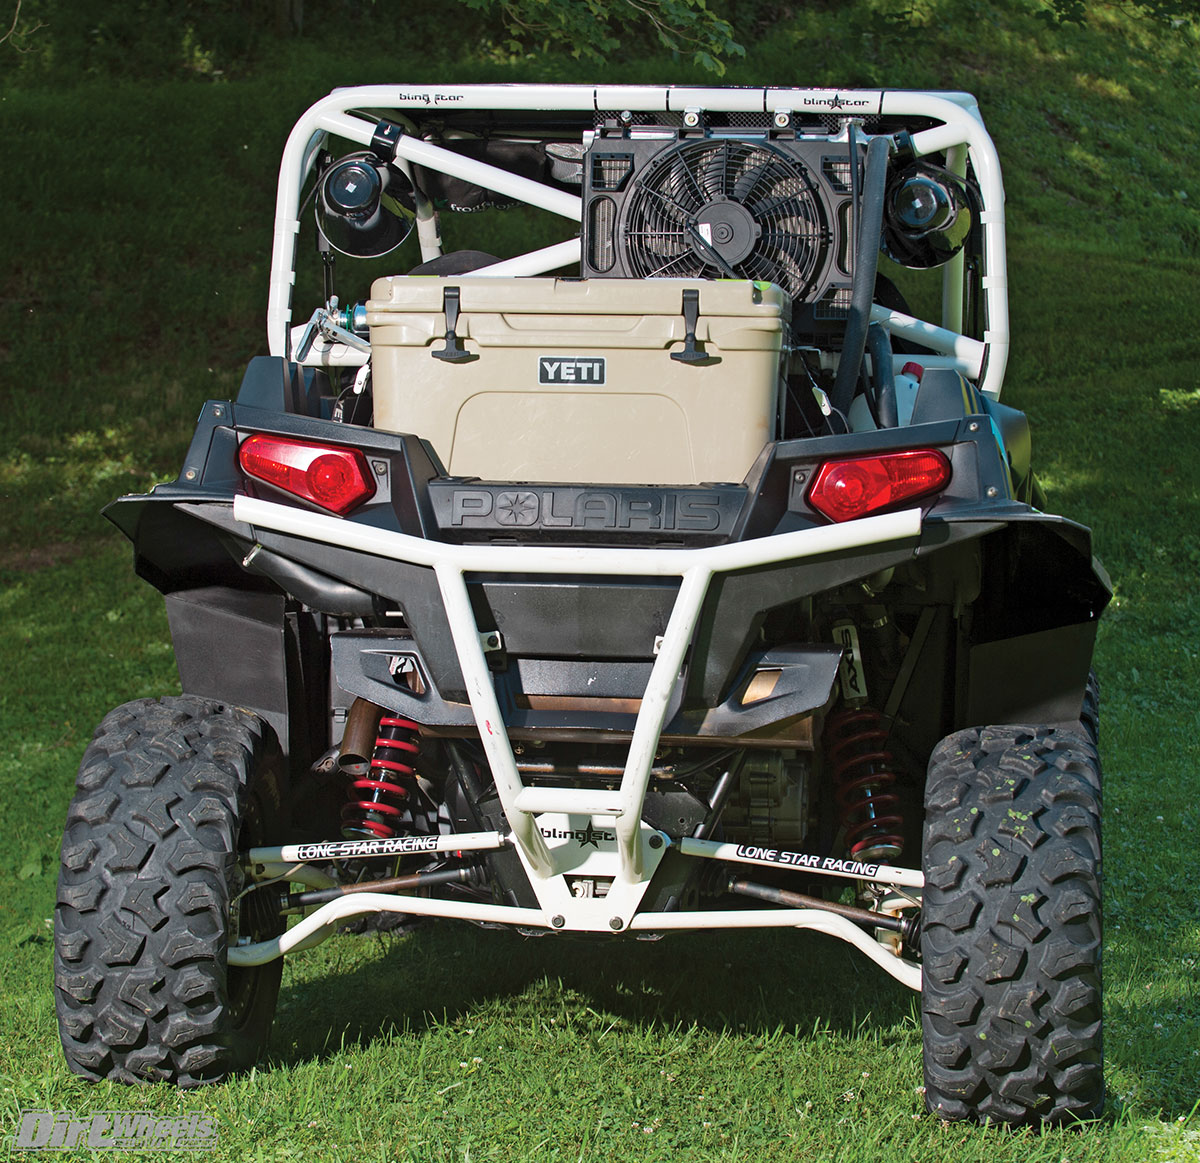 Lonestar Racing's high-clearance radius rod kit clears most obstacles with ease. The raised radiator location keeps the RZR from overheating, while the Yeti cooler keeps Adam from doing the same.